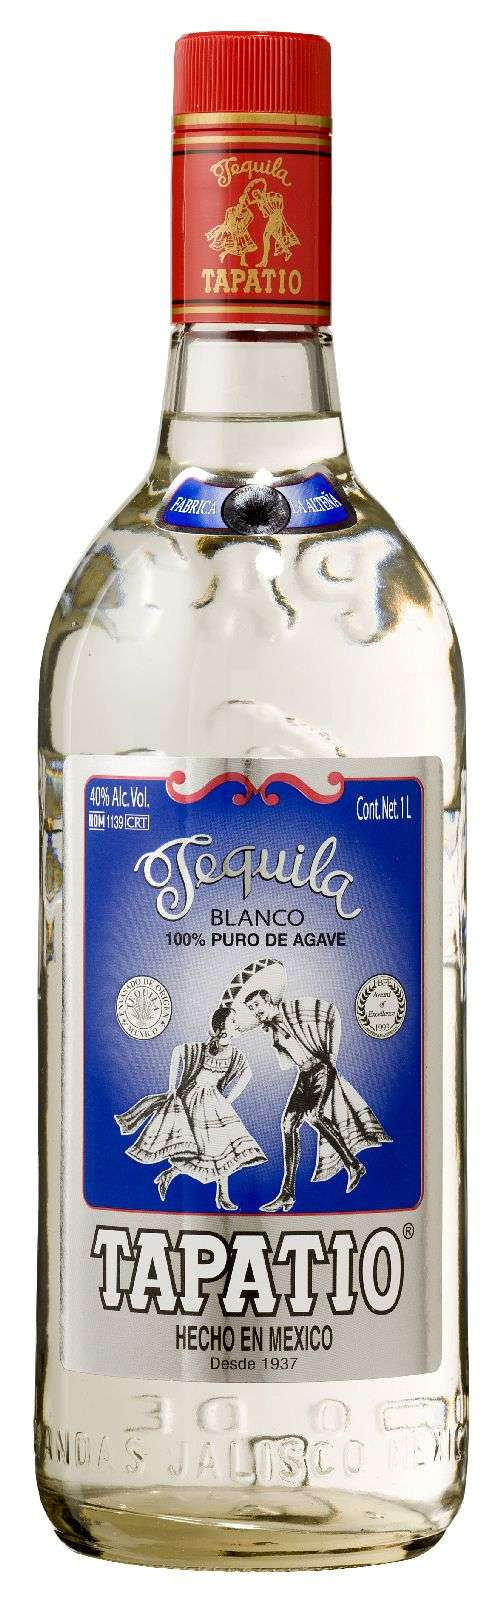 Tapatio Blanco 80 Proof Blanco Tequila